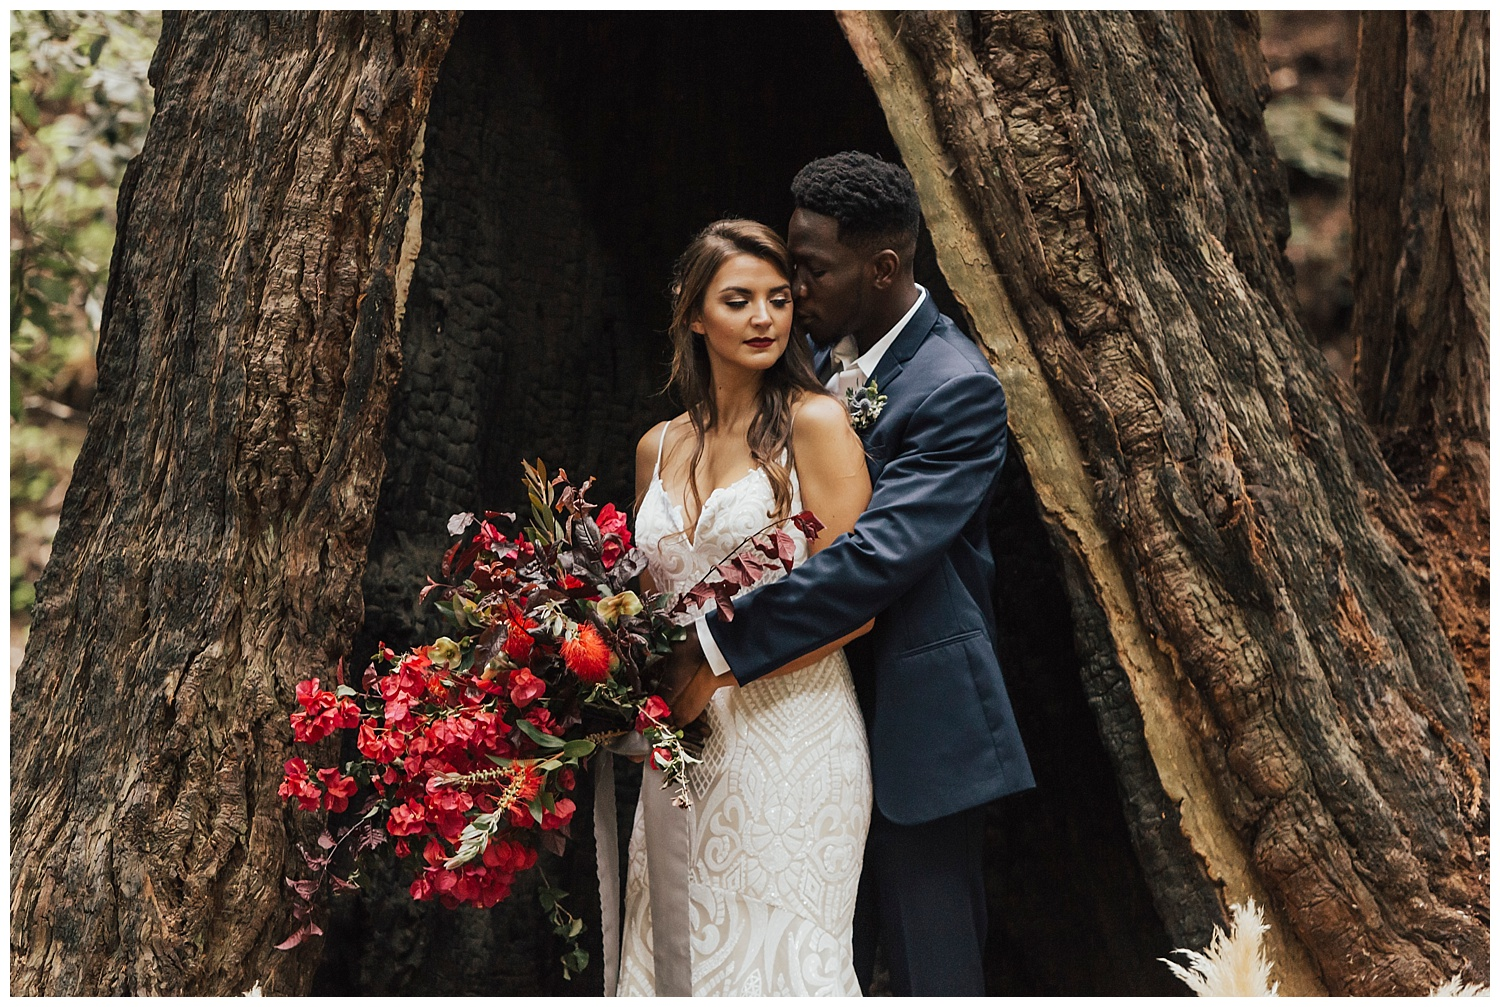 Big-sur-wedding-portrait-woods-boho-bride-inspiration-lush-bouquet.jpg